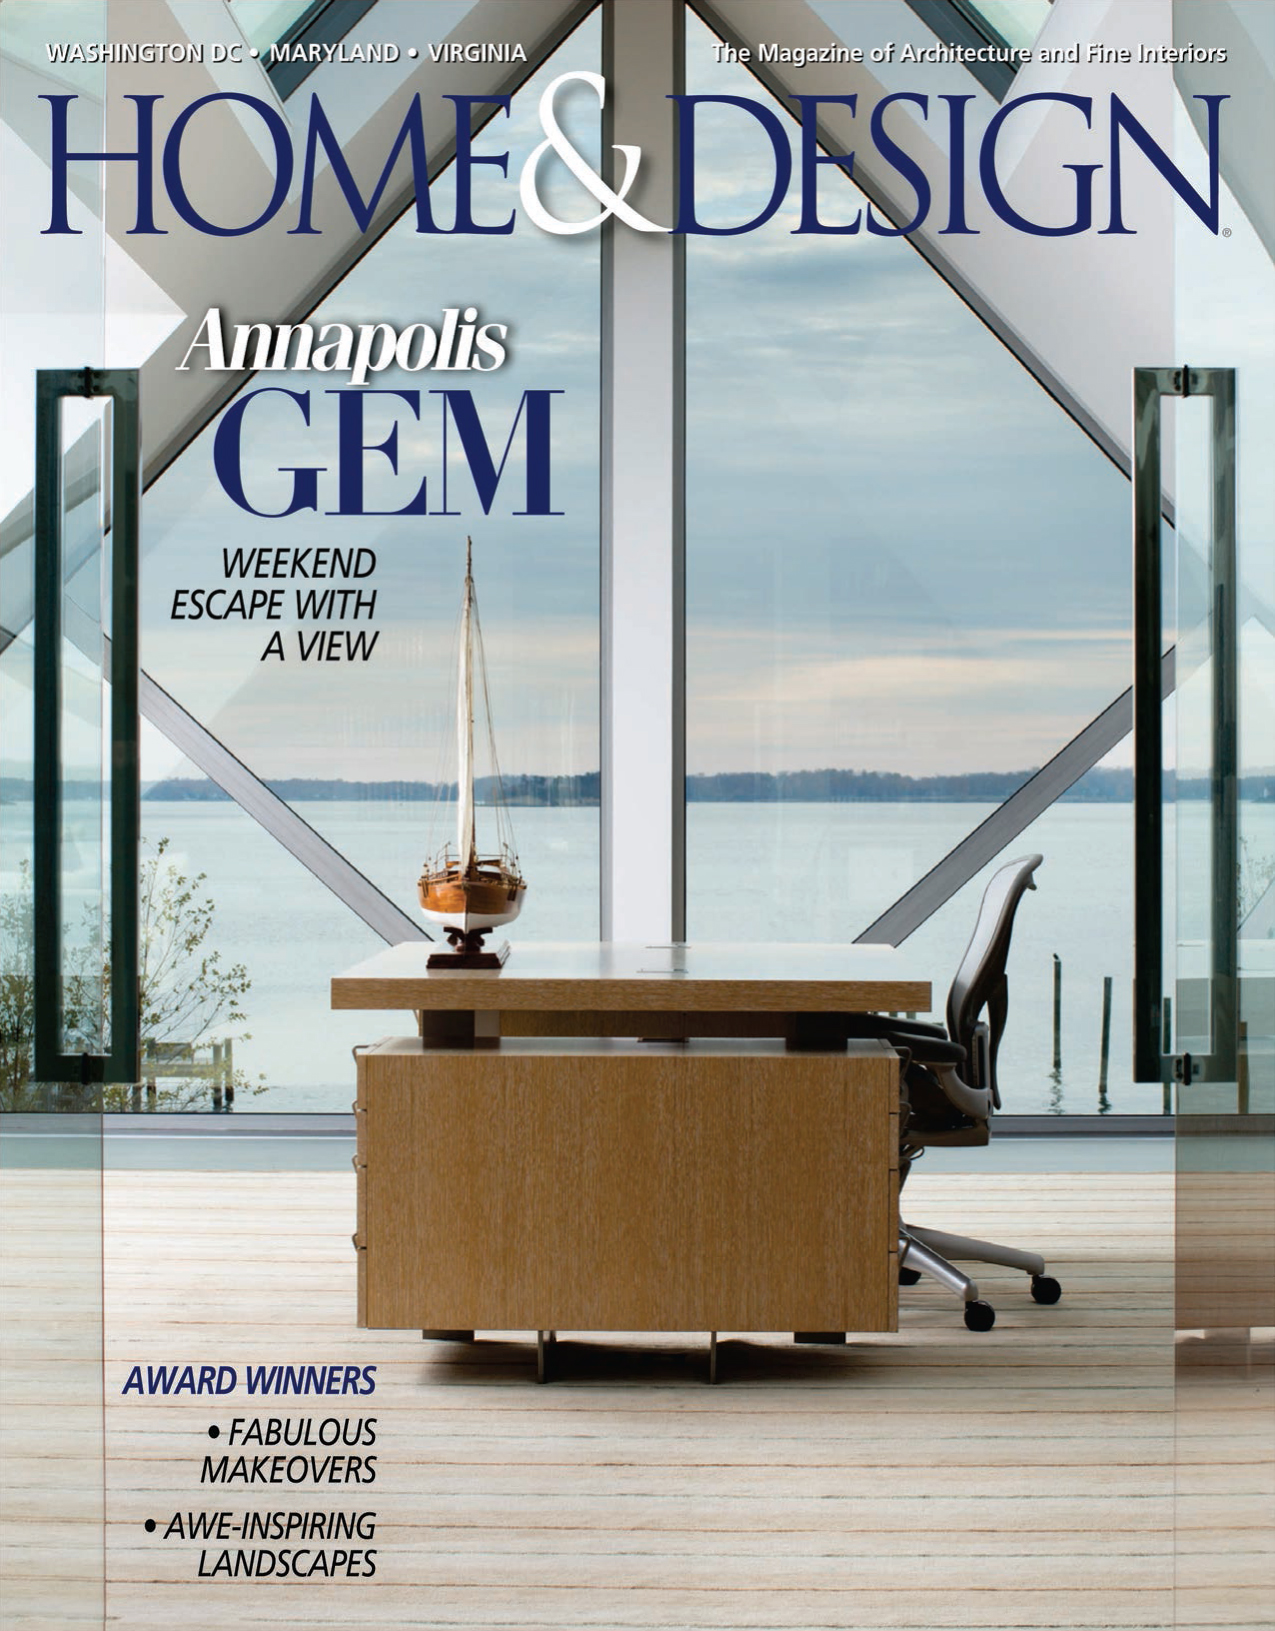 Press & Awards — Pyramid Builders on home and design software, home and garden design, home and landscape design, home and cars, home and food, home house design, home and interior design, home decor magazine covers,